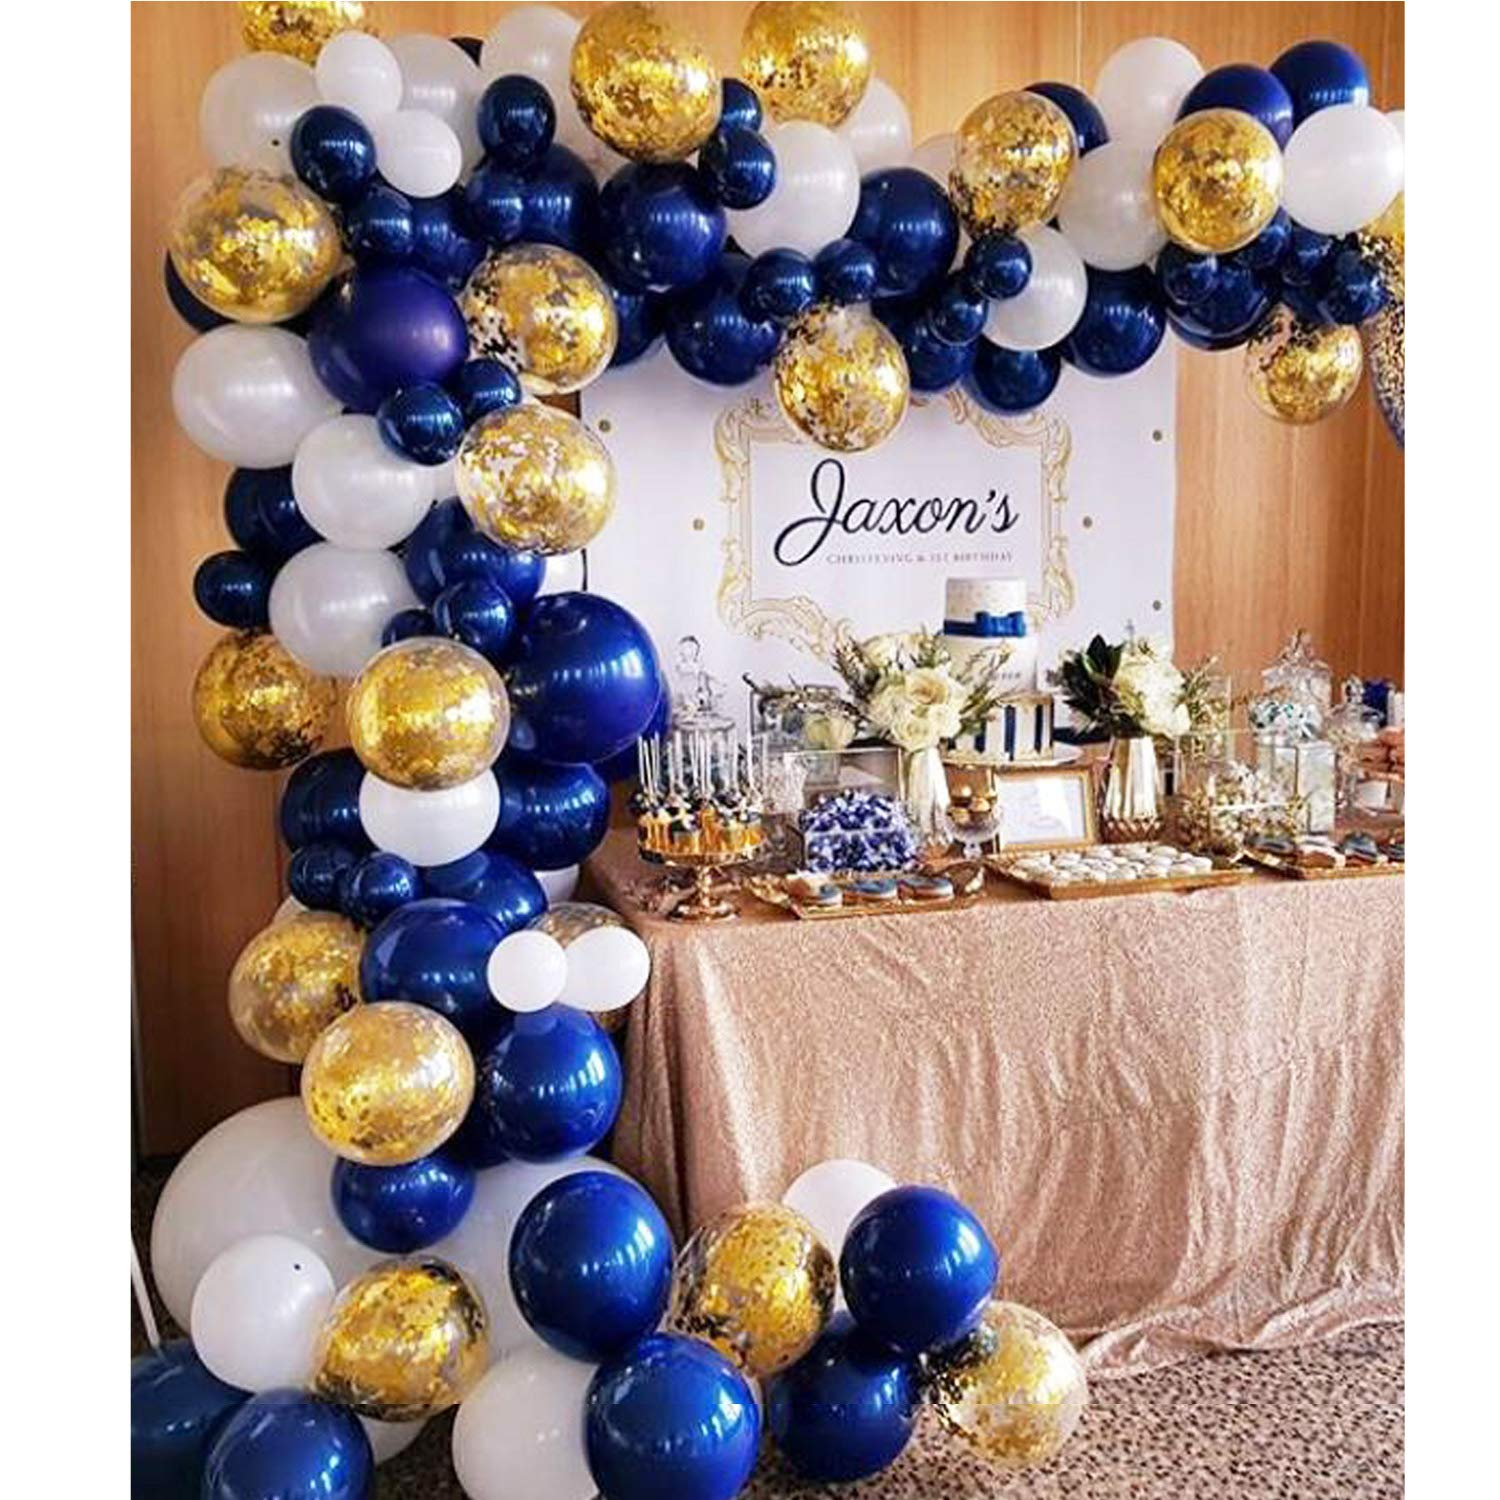 Topllon Navy Blue Balloons 104 Pcs 10 Inch Confetti Balloons Matte White Latex Balloon Garland Kit with 1 PCS Balloon Strip for 1st Birthday Party Baby Shower Wedding Party - 3 Colors